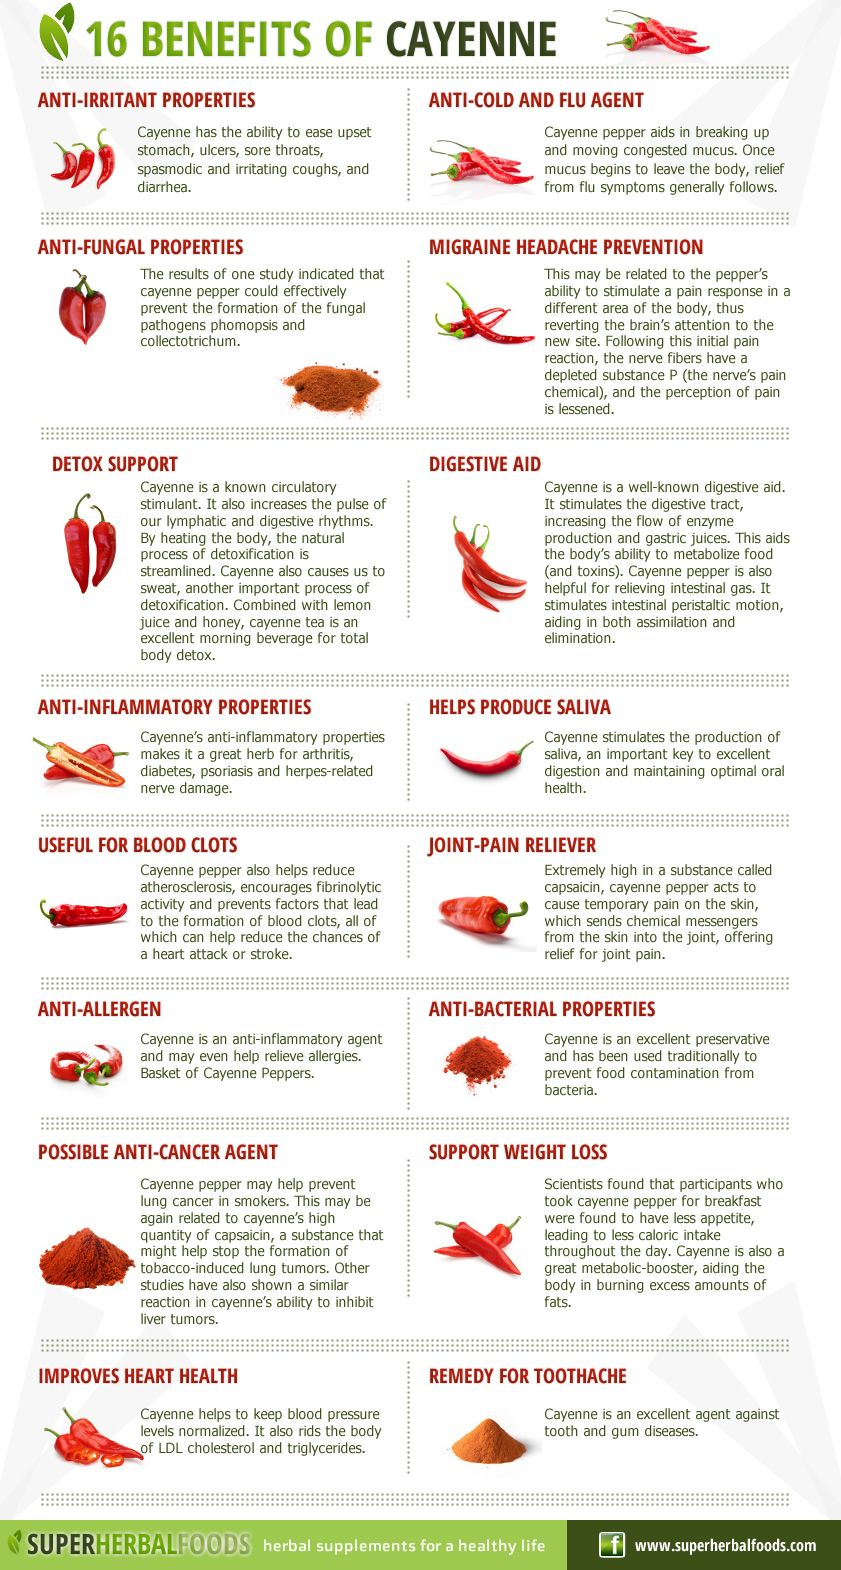 Cayenne Pepper – 16 Benefits : Here is an interesting infographic ...